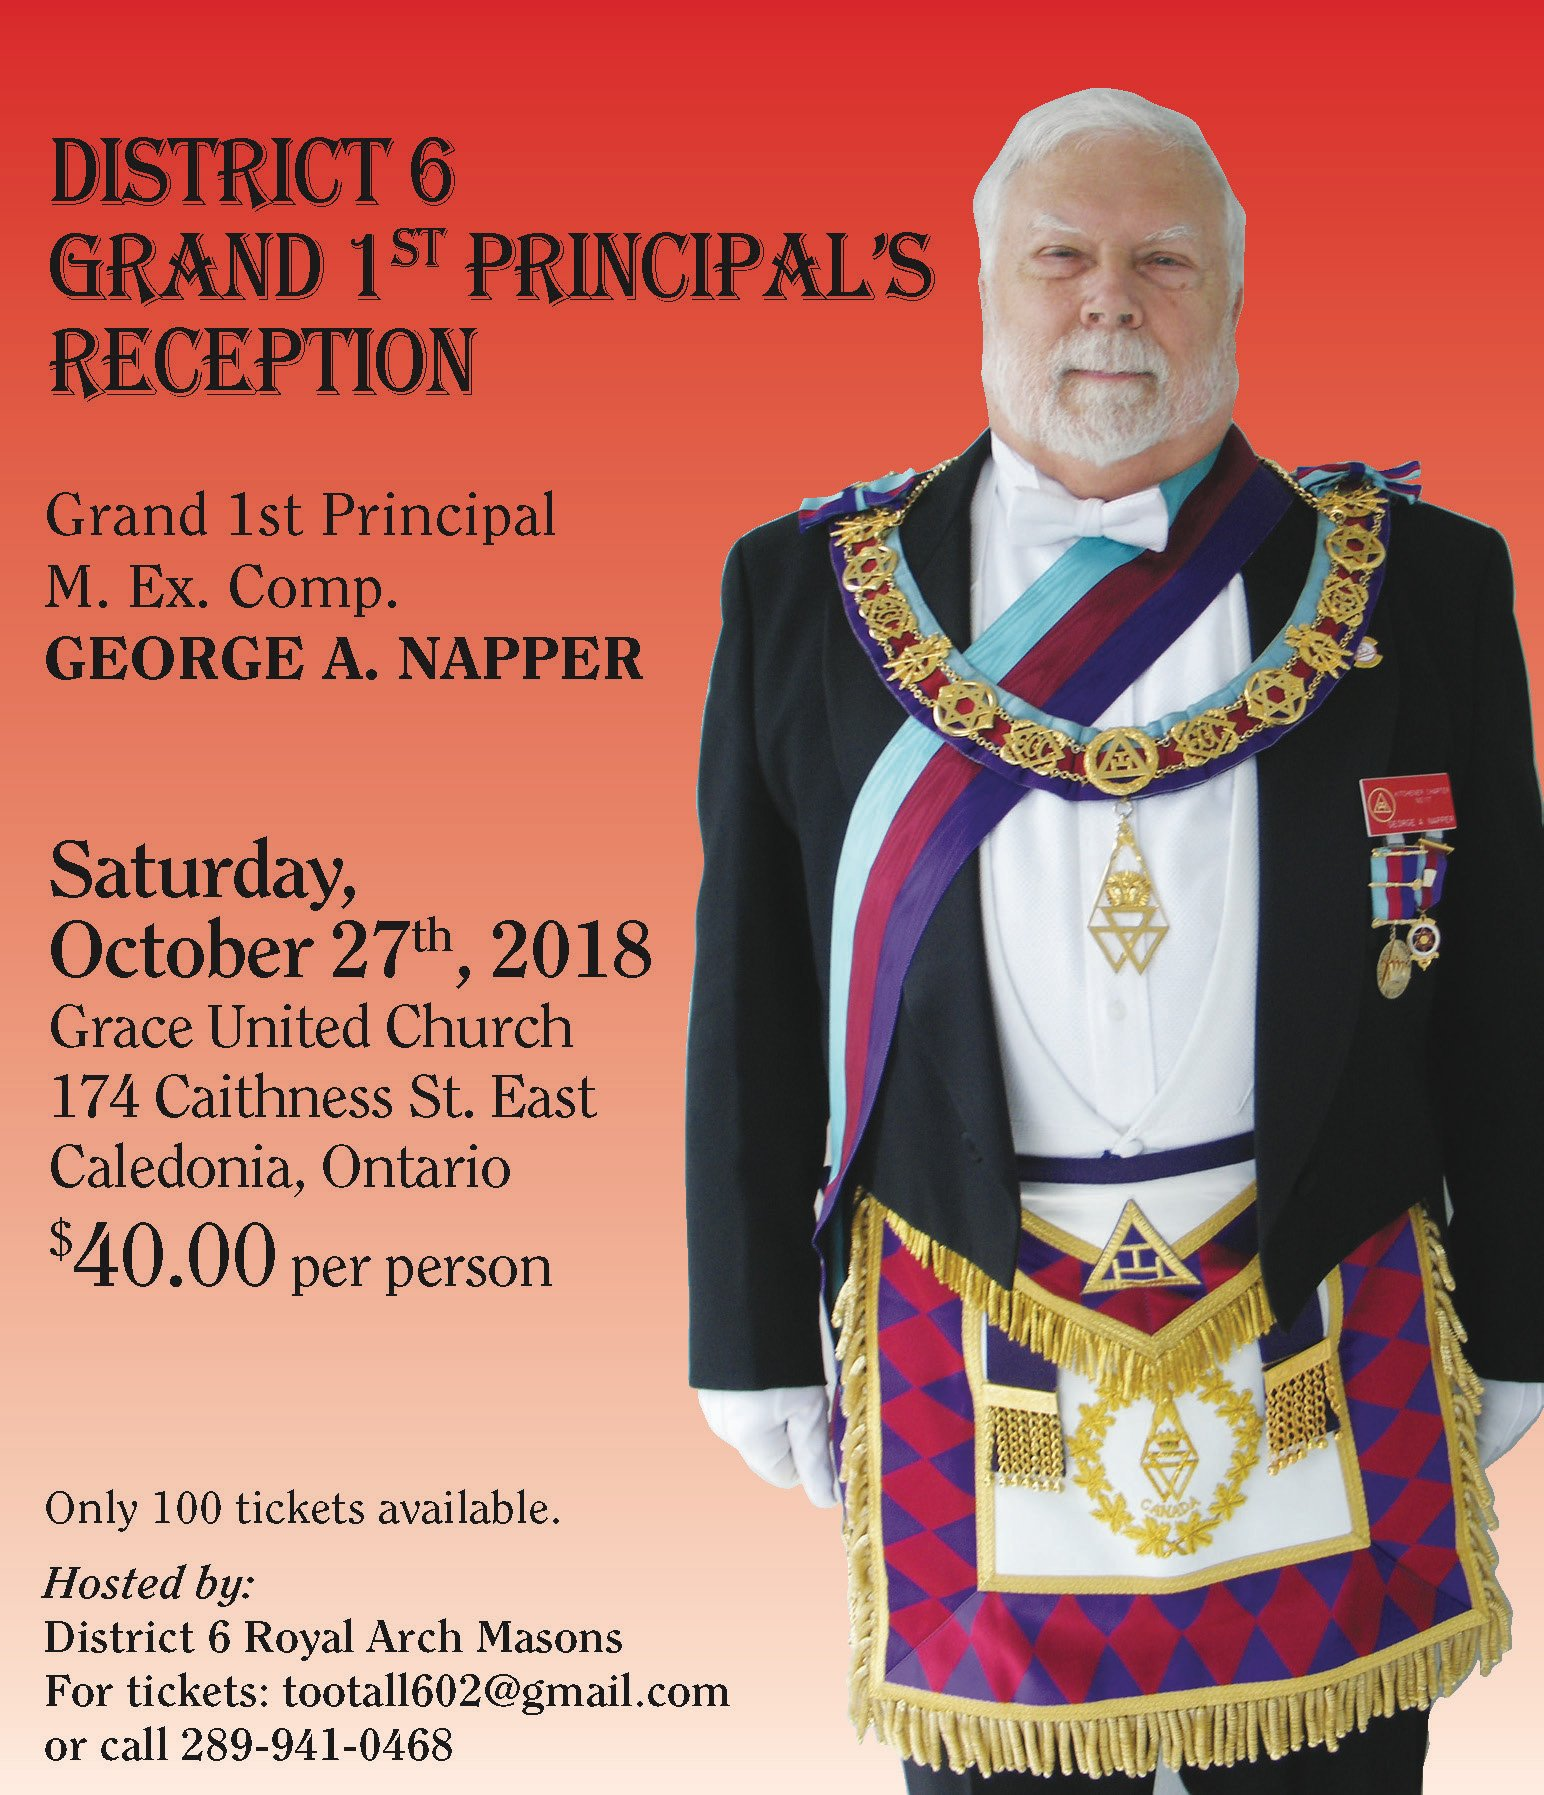 Reception and Dinner – Royal Arch Masons